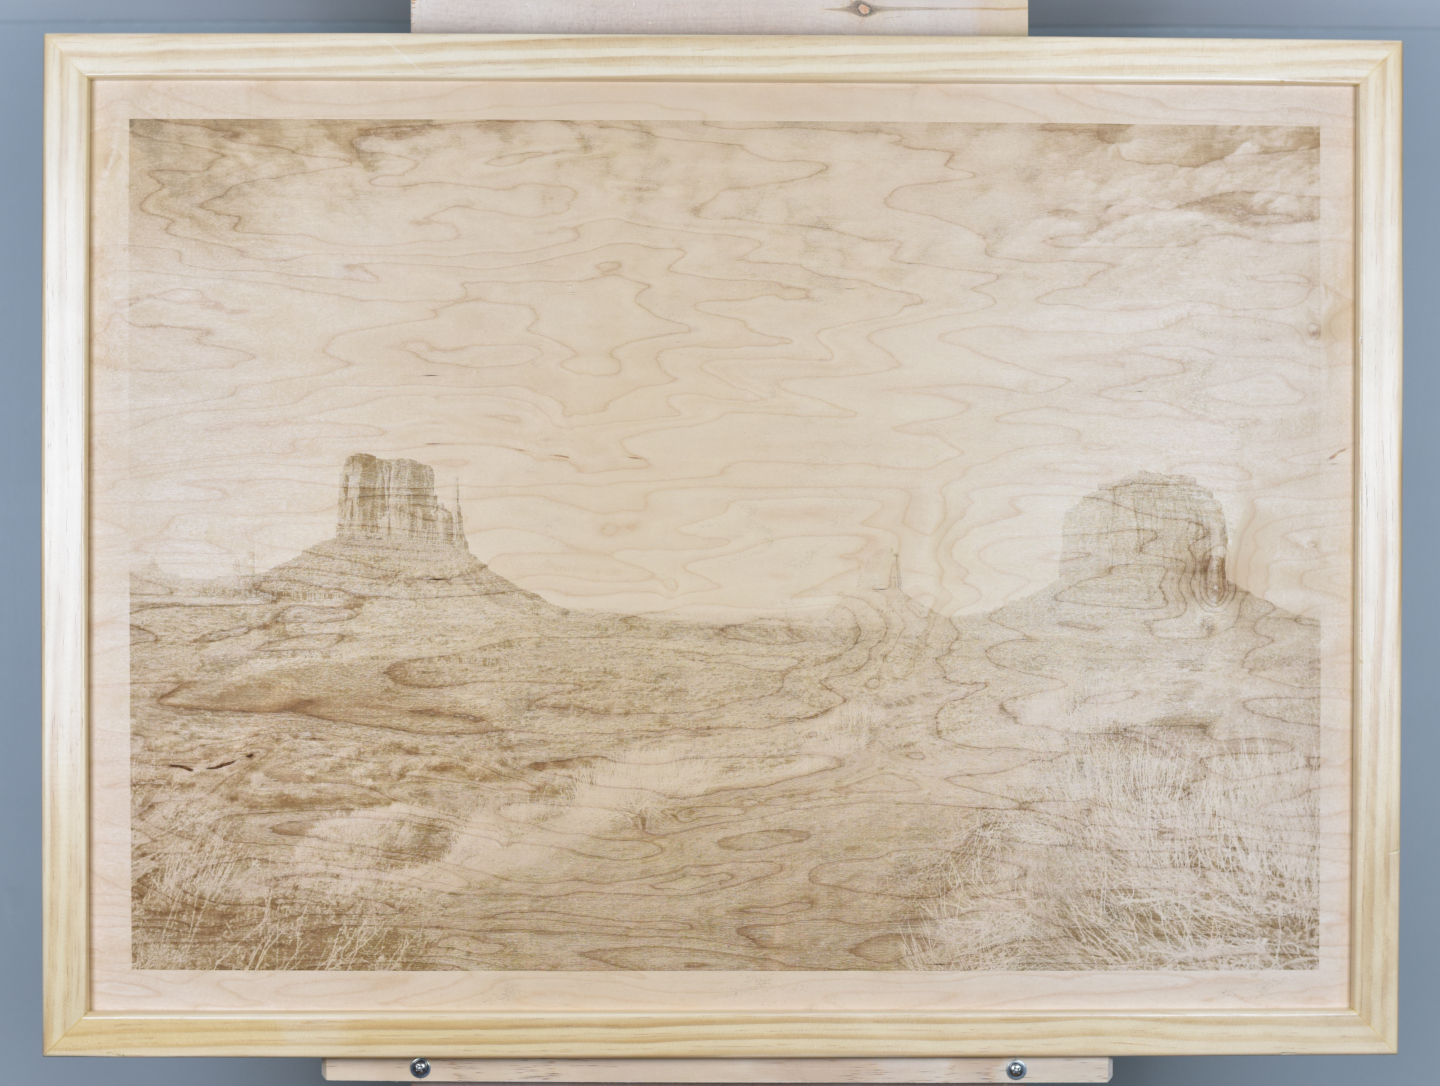 A wood burning (digital pyrograph) of red sandstone mesas (buttes) towering over Monument Valley Arizona. Photograph by Carol Highsmith.